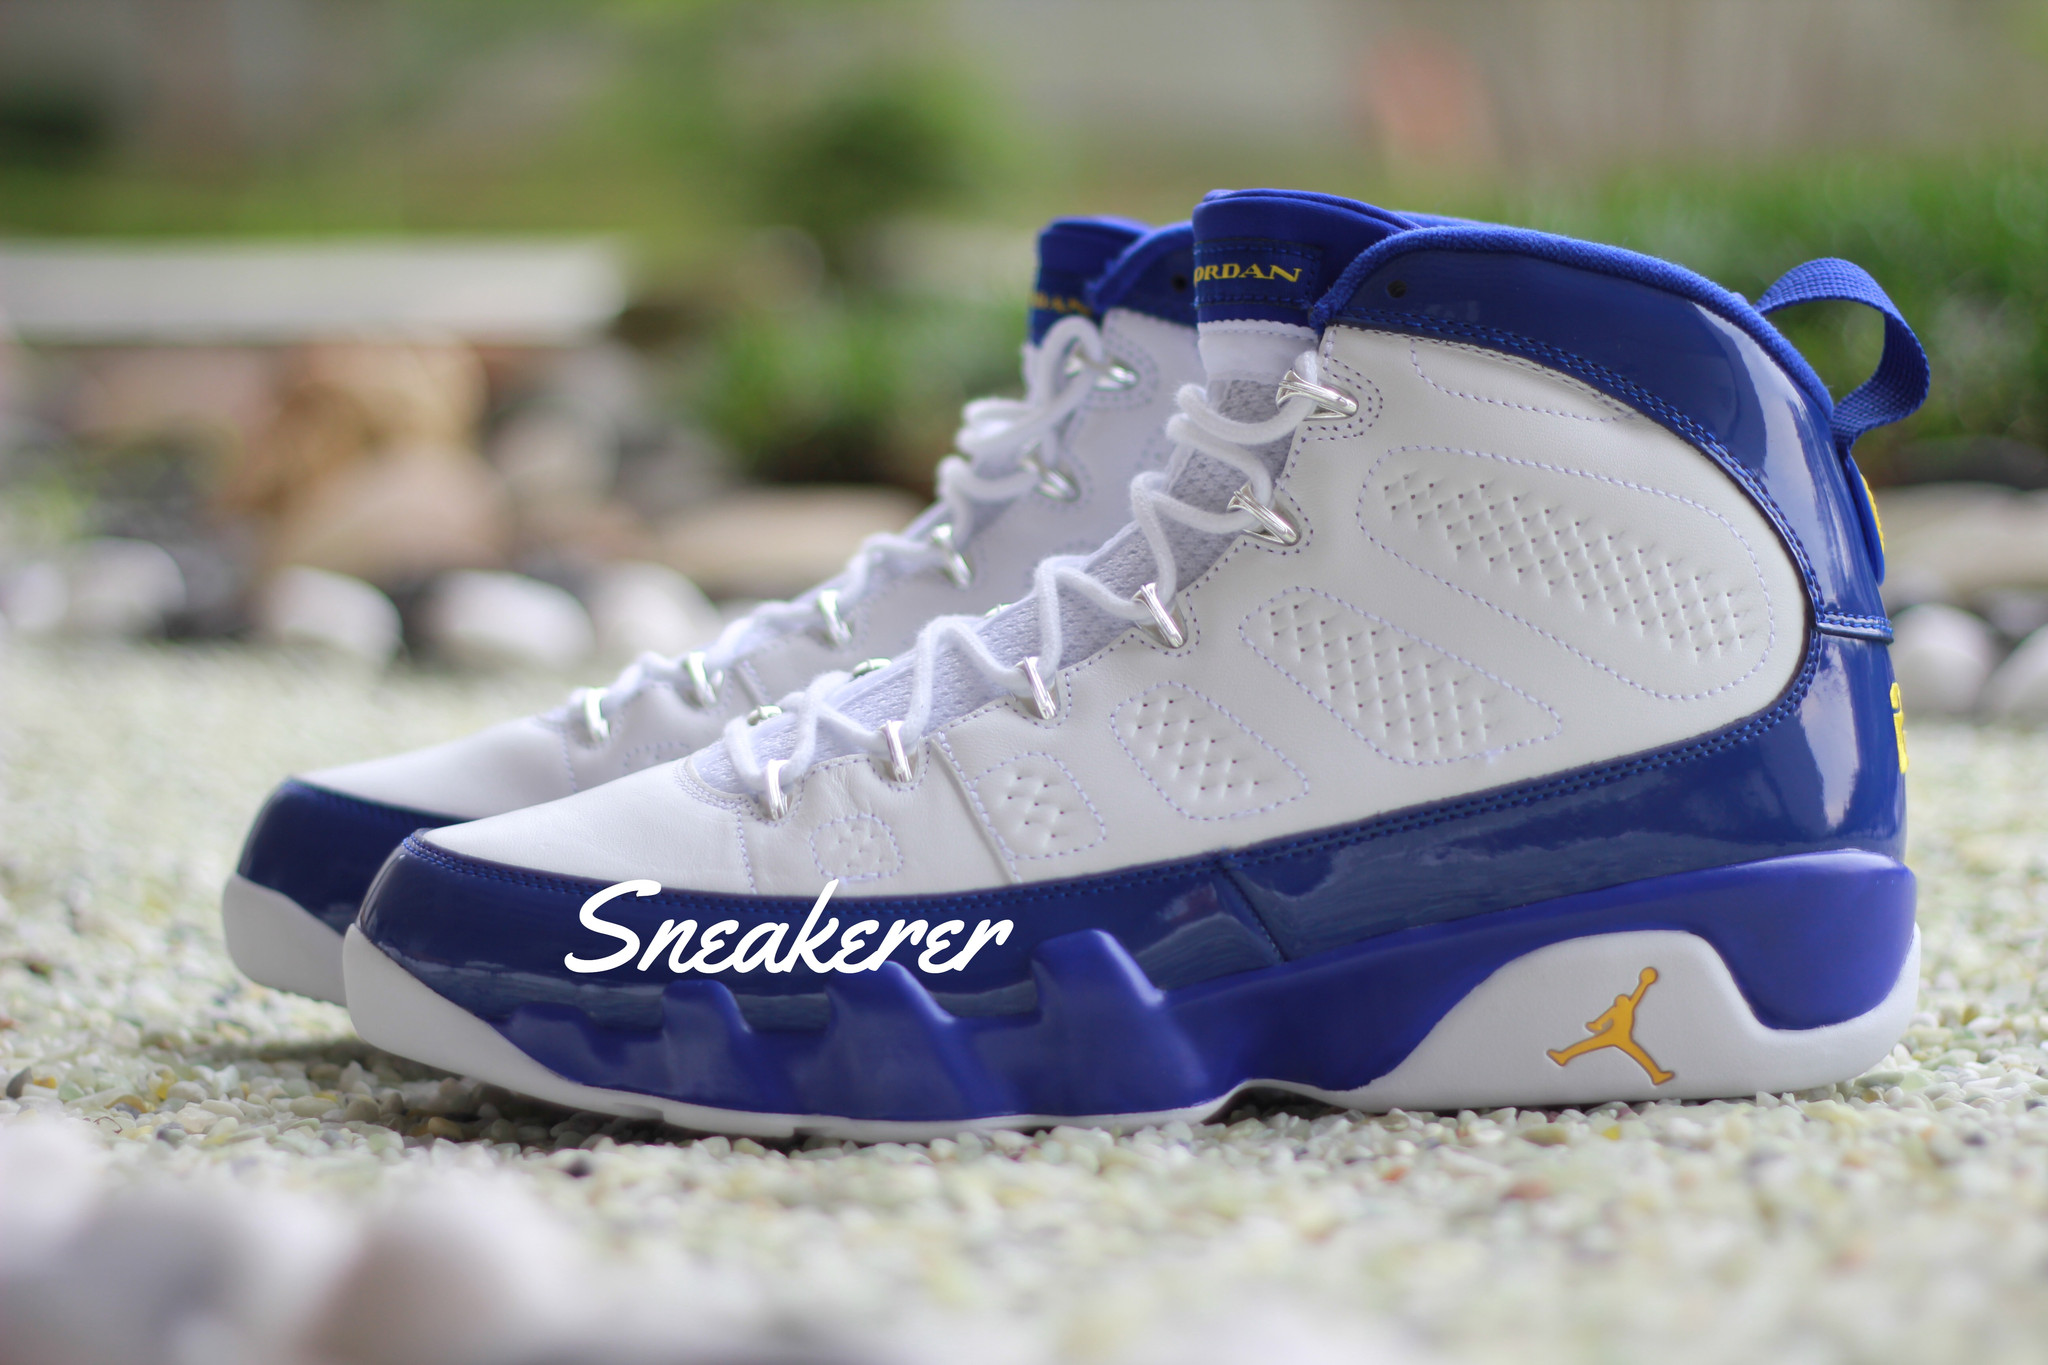 7e17e8be2b48 Air Jordan 9 Kobe Bryant PE - New Images - Air 23 - Air Jordan ...